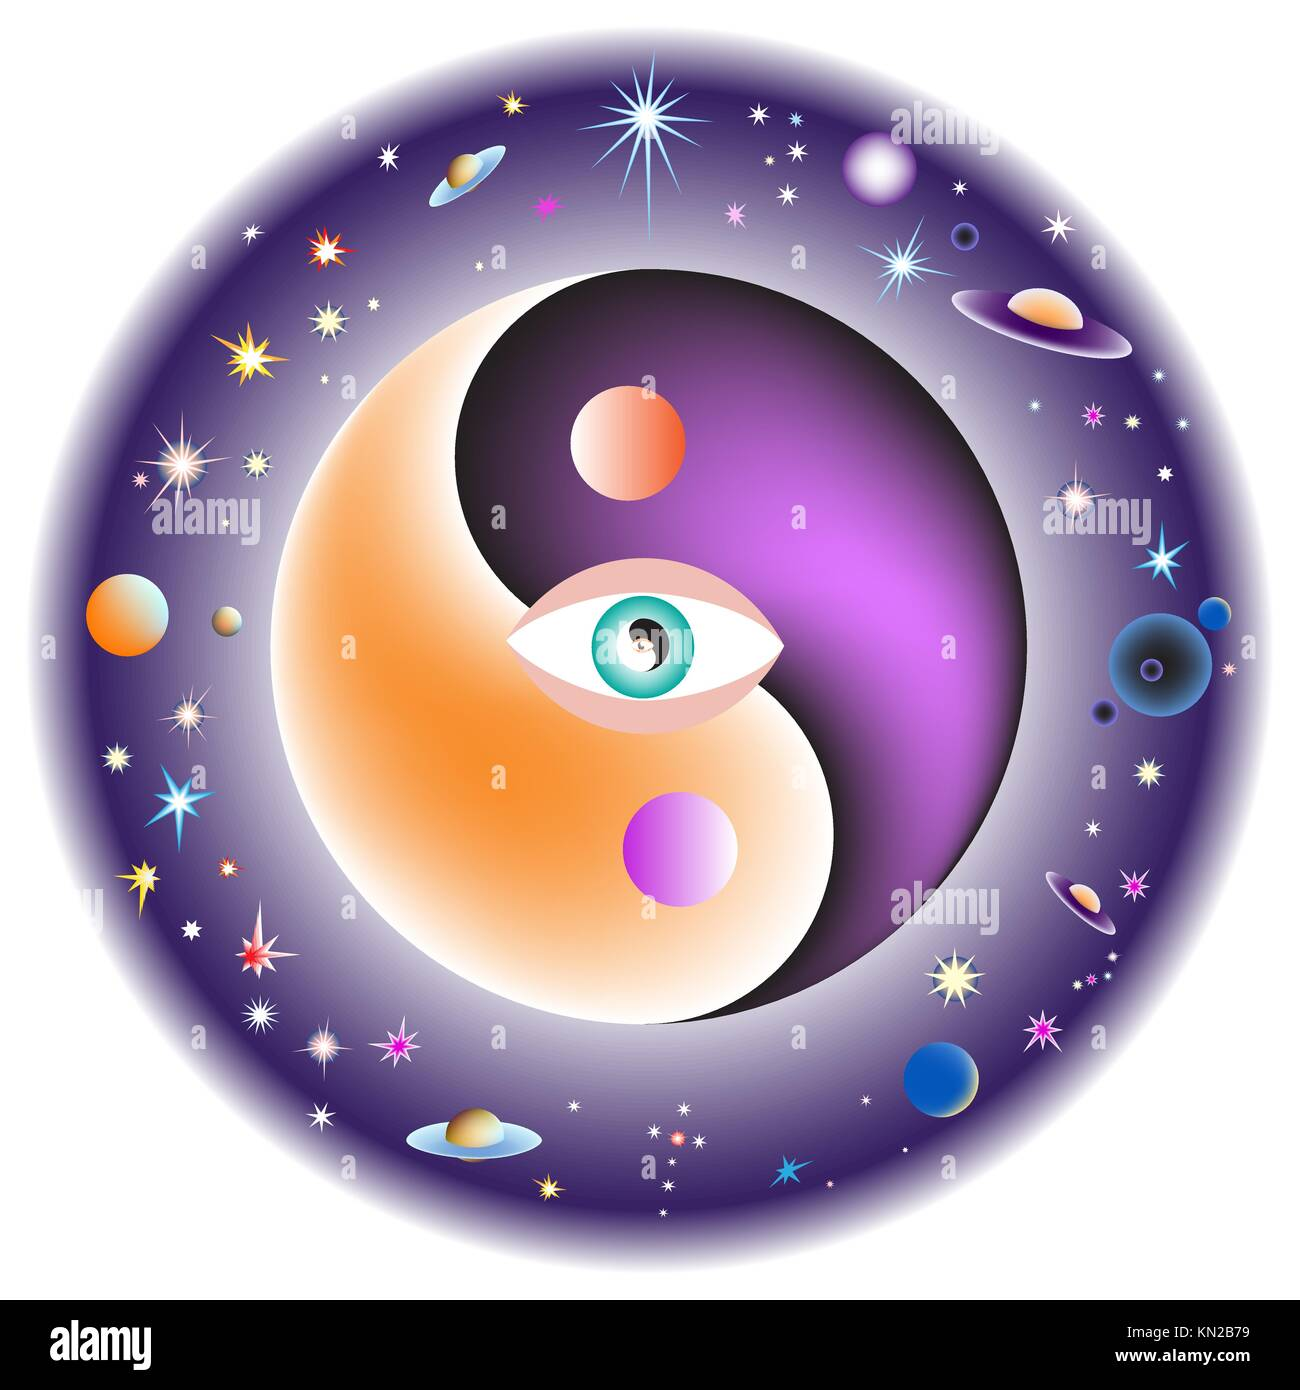 Eye in the center of the universe. - Stock Vector